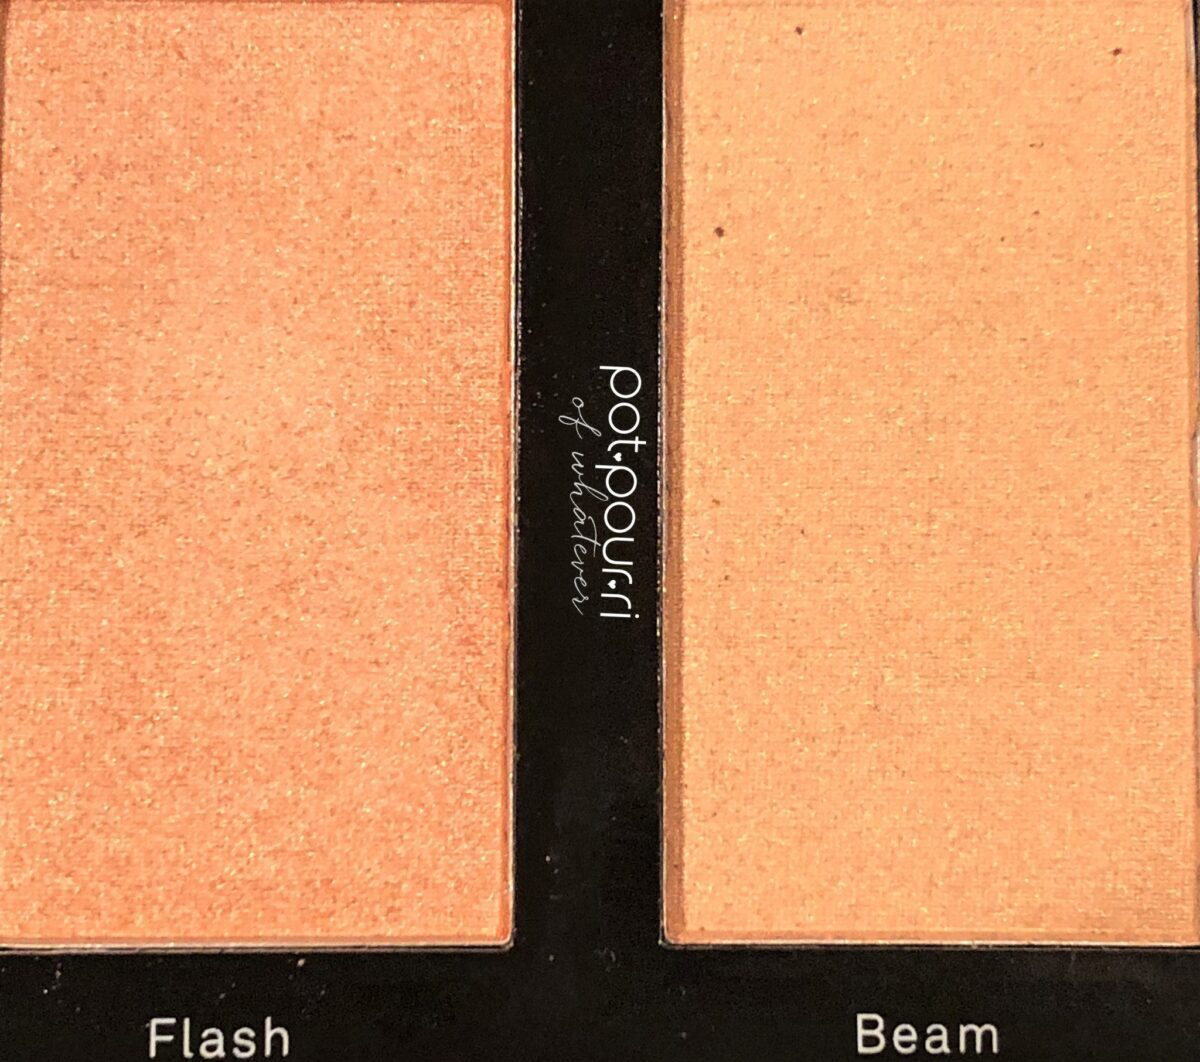 HIGHLIGHTERS KEYN AUCOIN CONTOUR BOOK VOLUME111